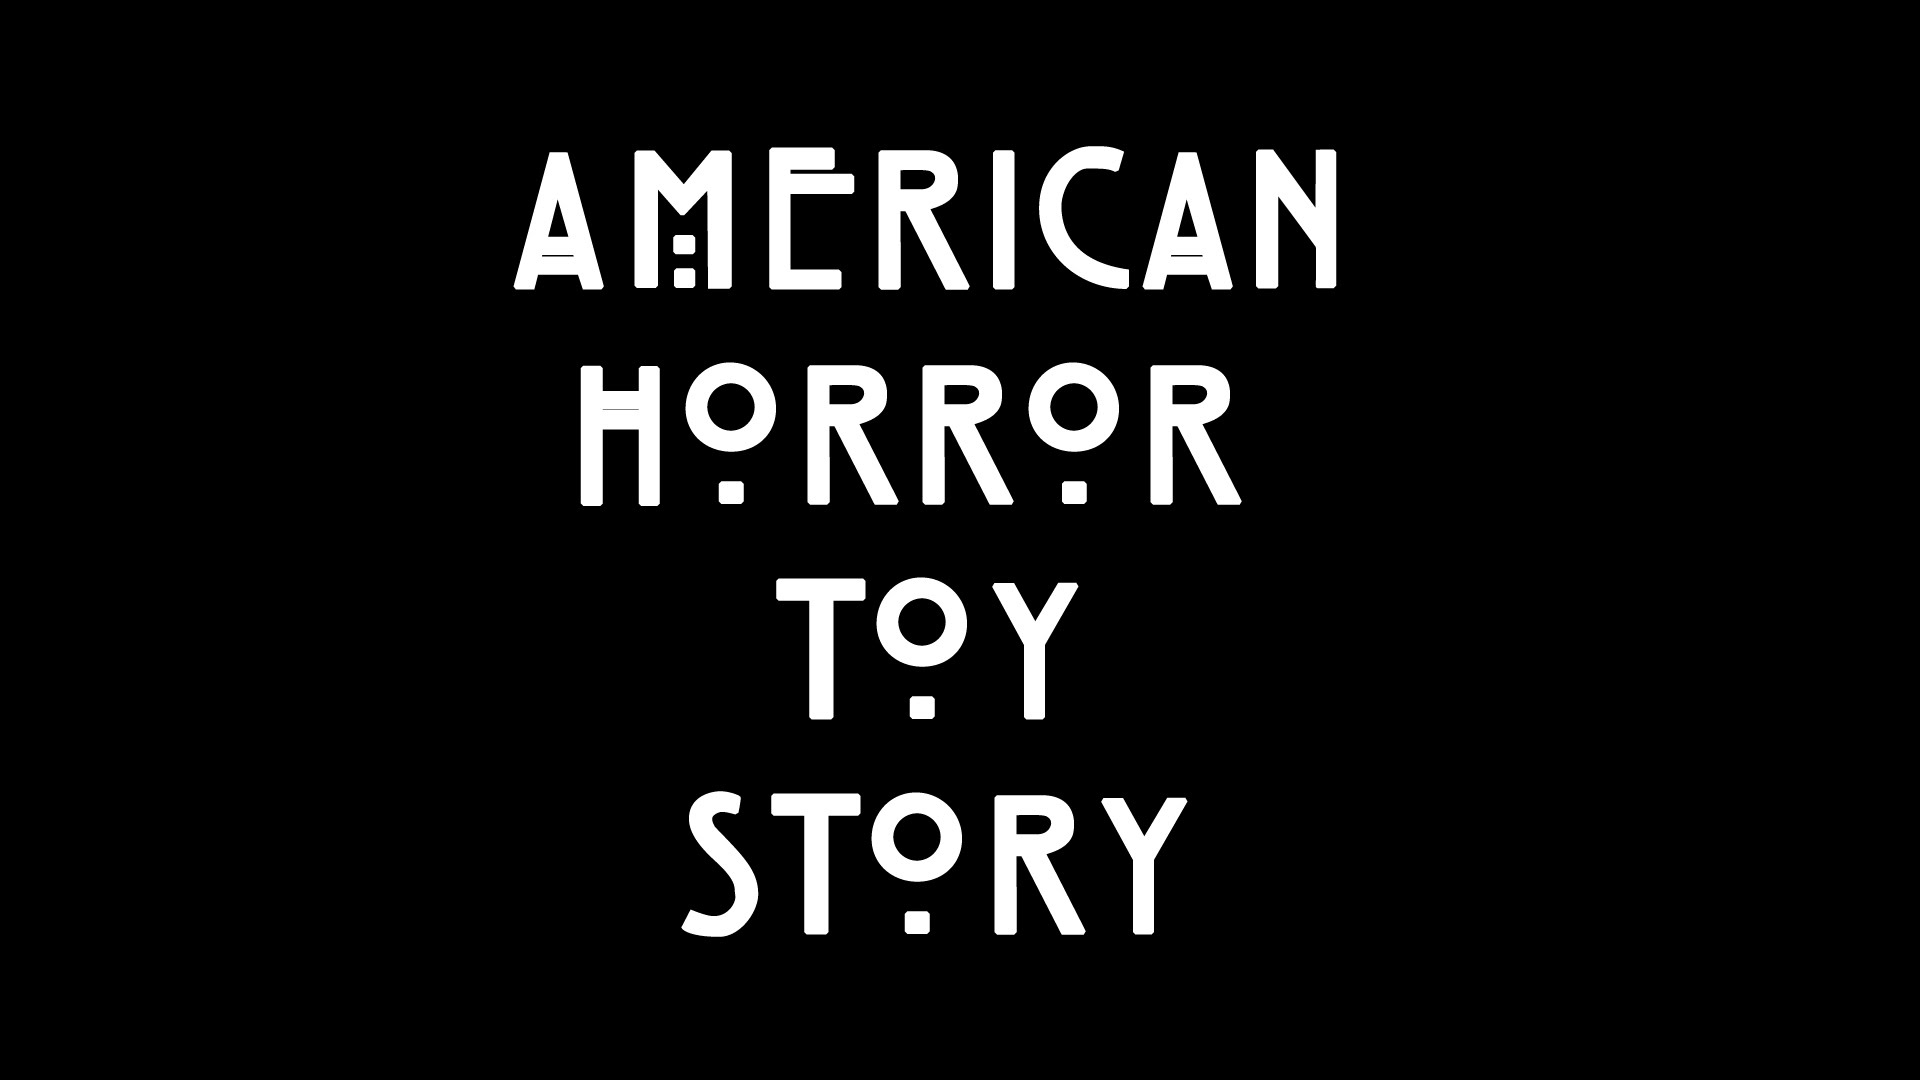 'American Horror Toy Story', A Creepy Animated Mashup of 'Toy Story' & The 'American Horror Story' TV Series